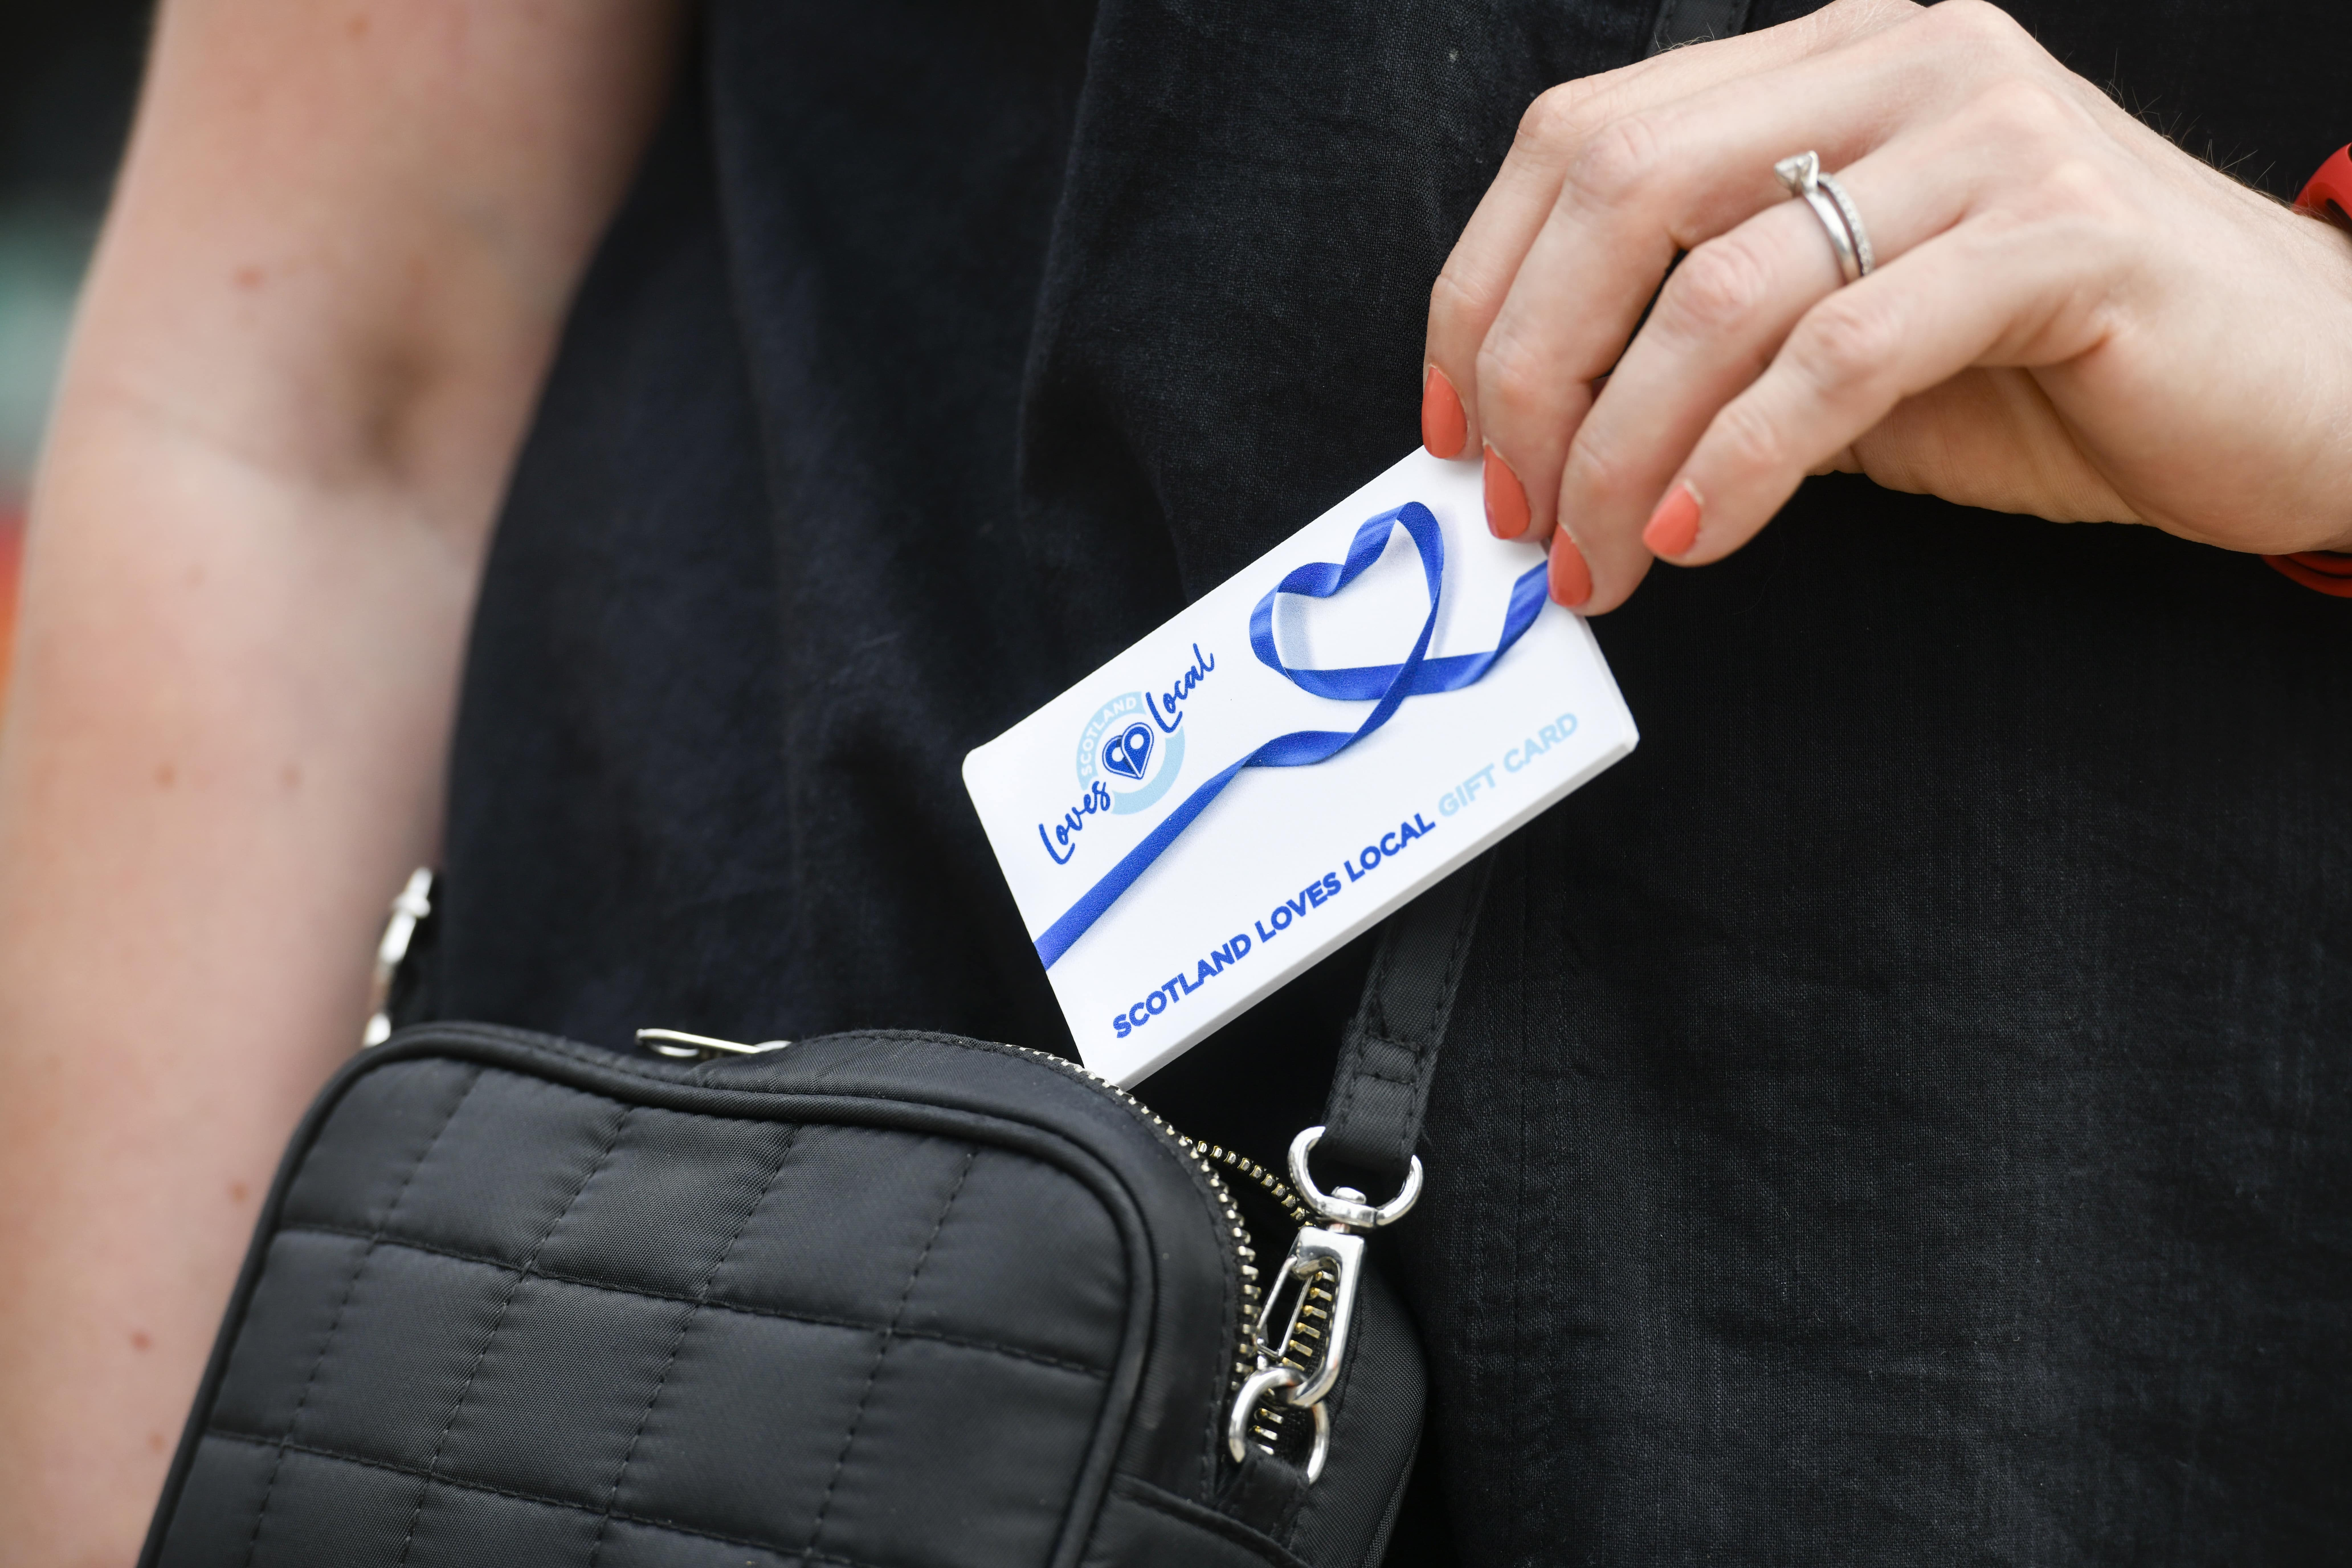 A Scotland Loves Local gift card being taken out of a handbag